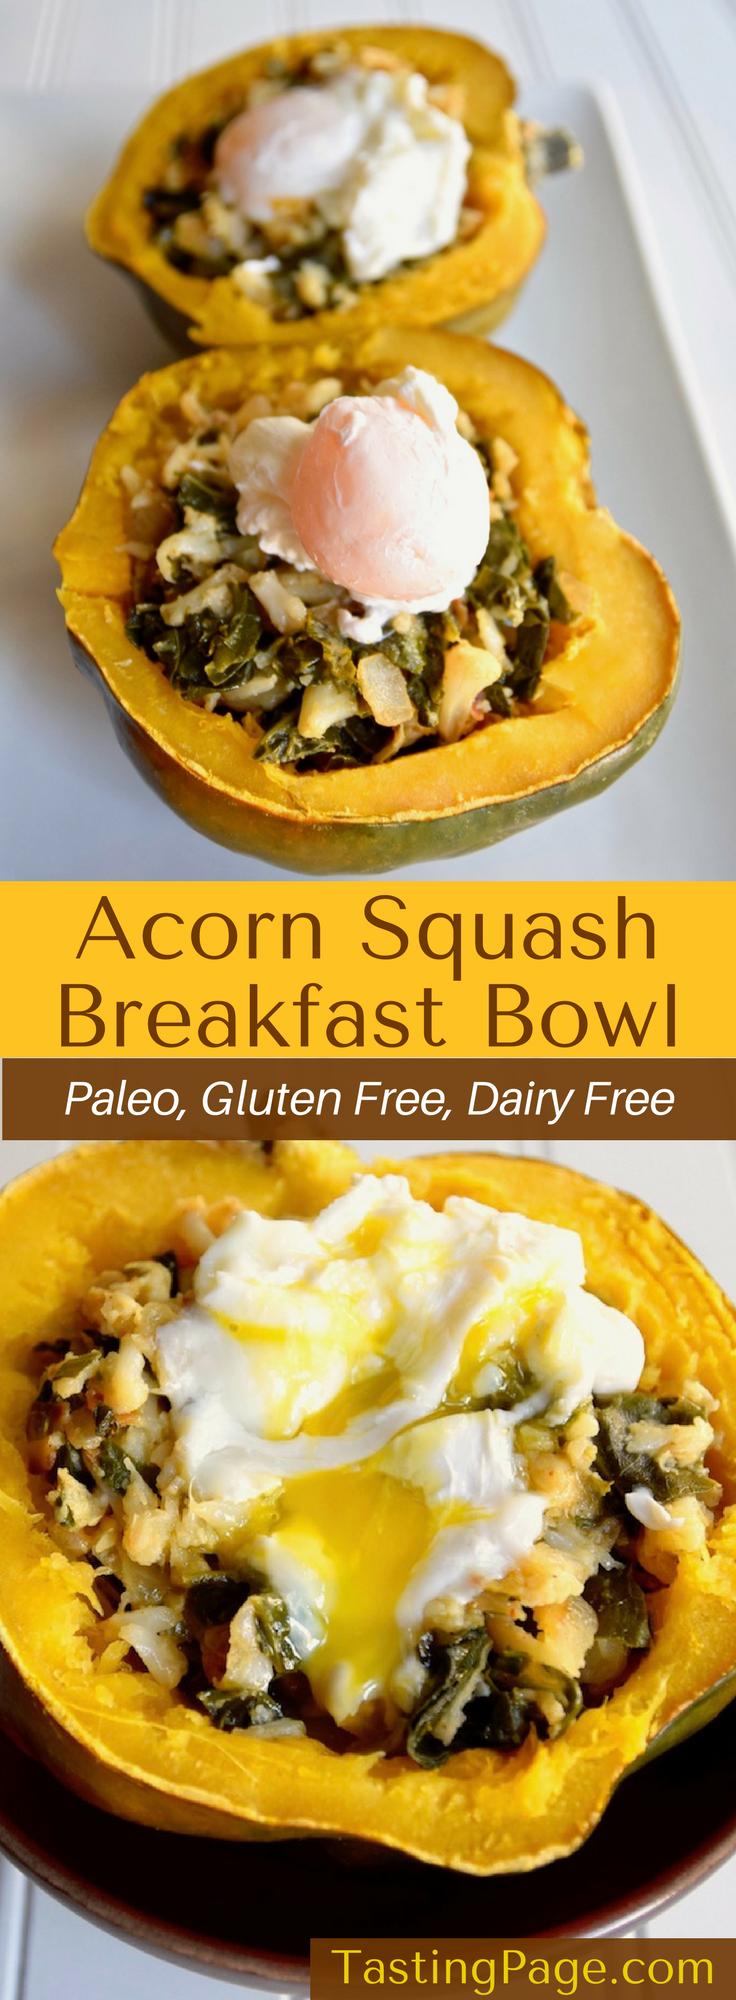 Paleo Acorn Squash Breakfast Bowl - double down on your veggies at breakfast with this cauliflower kale rice stuffed squash with a poached egg on top. It's gluten free and dairy free | TastingPage.com #breakfast #paleo #glutenfree #dairyfree